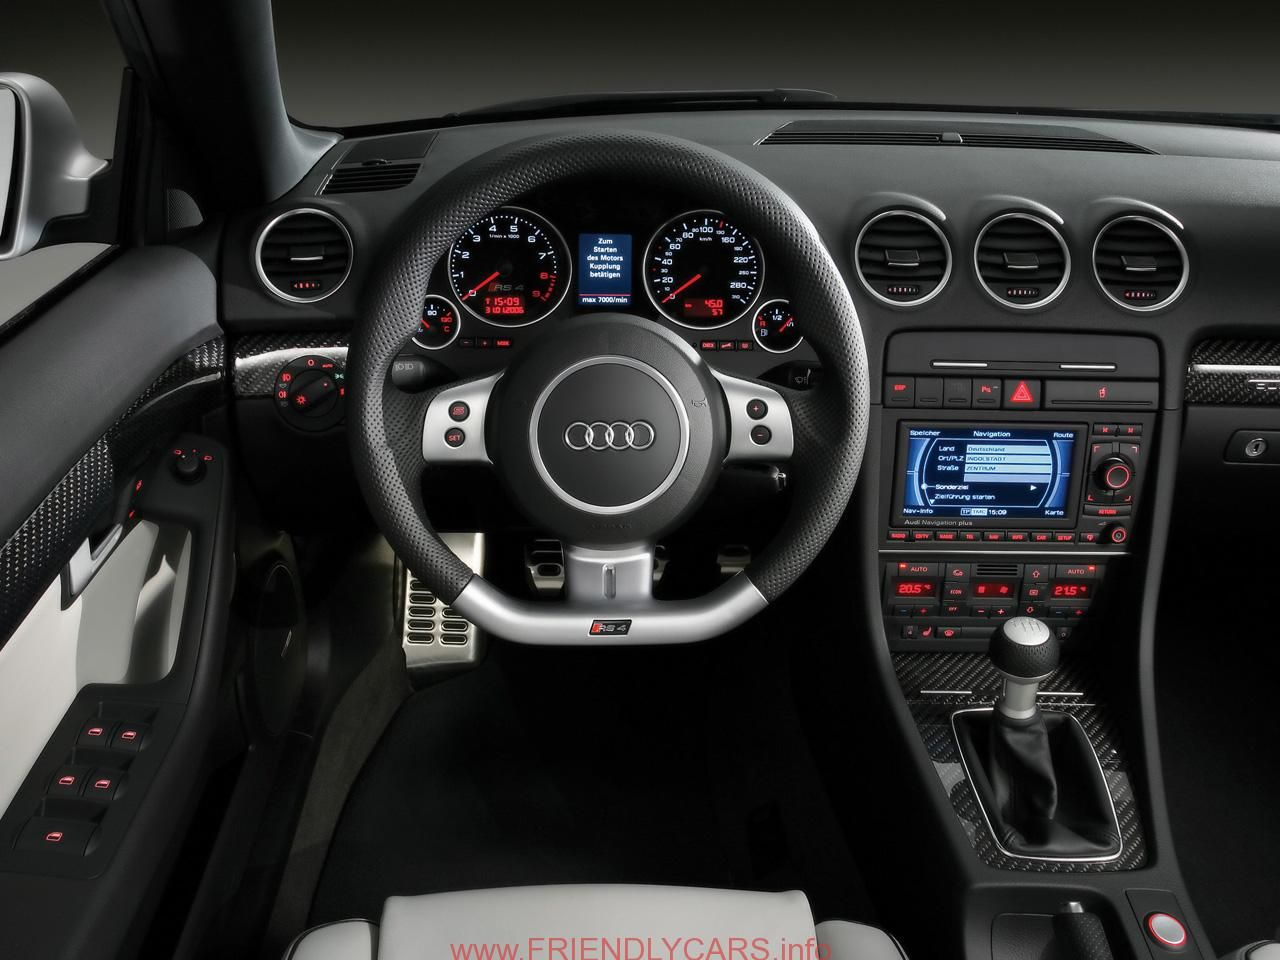 Cool Audi A4 2008 Interior Car Images Hd Audi RS4 Style